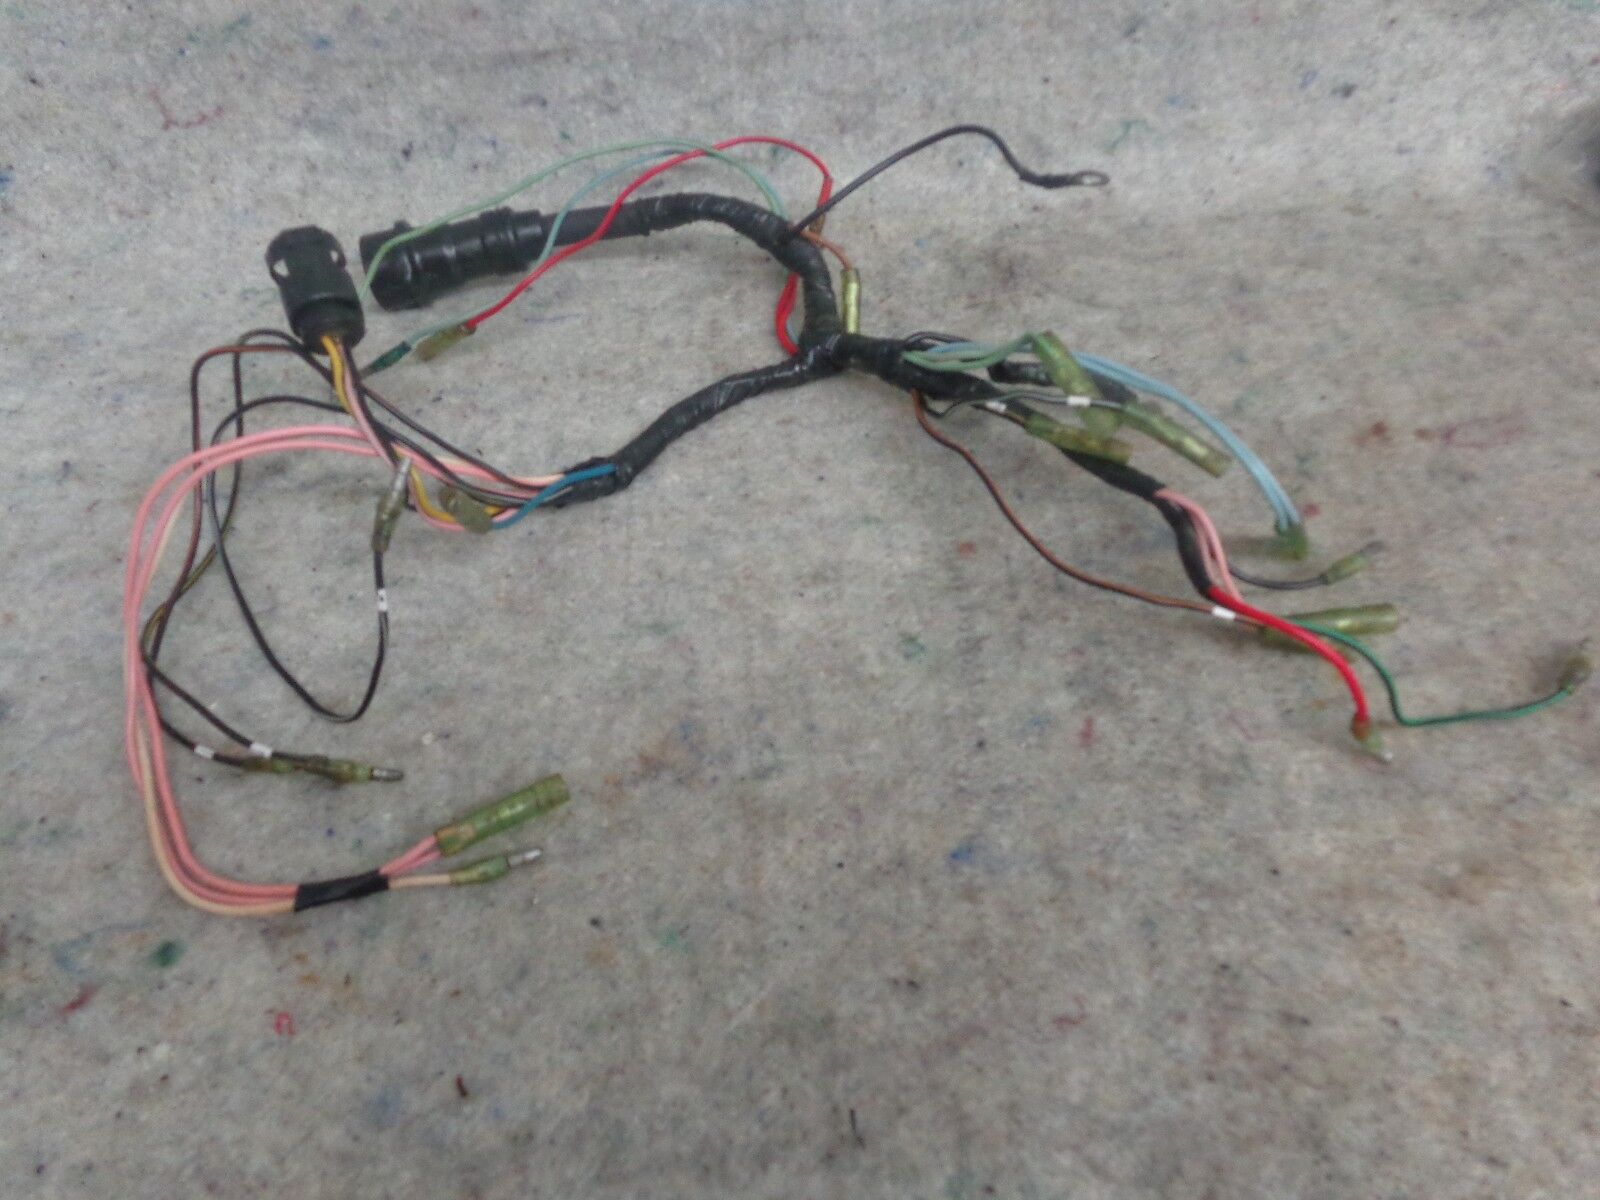 YAMAHA WIRE HARNESS ASSY 6H4-82590-11-00, 1989- 1994 40/50HP